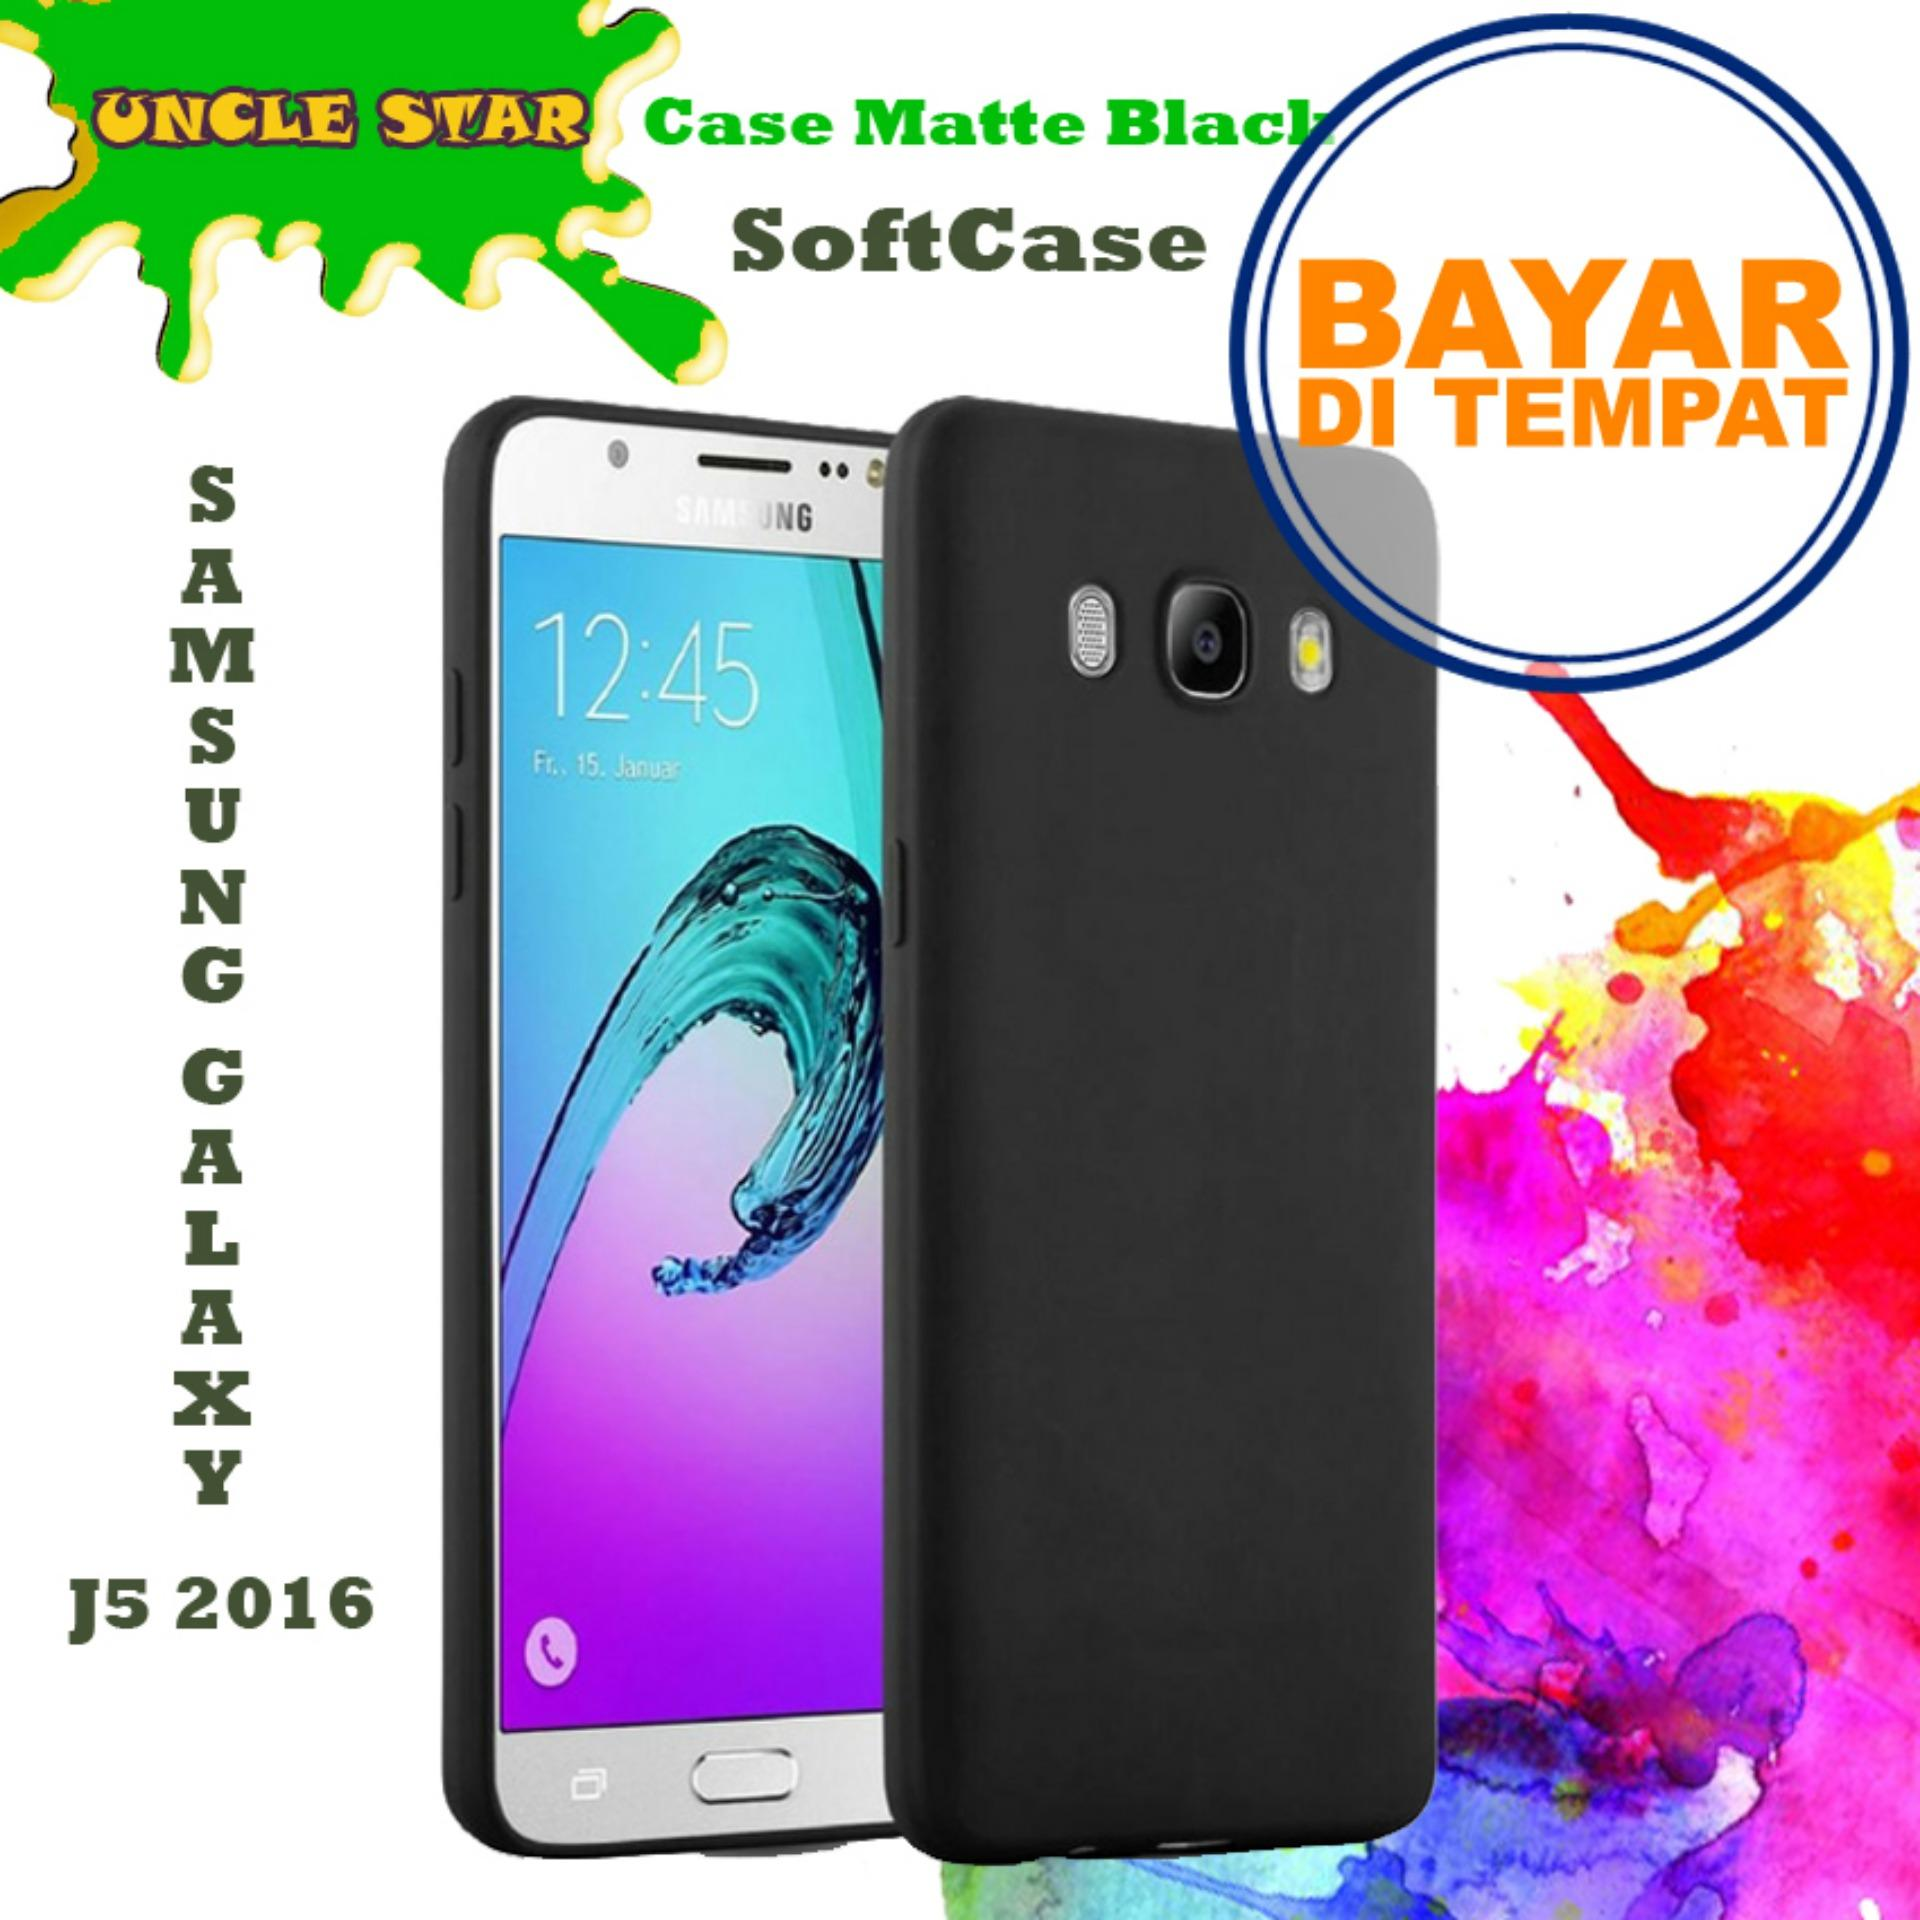 Buy Sell Cheapest Uncle Flints Sun Best Quality Product Deals Softcase Thin Droff Matte Black J5 Prime Star Case Elegant For Samsung Galaxy 2016